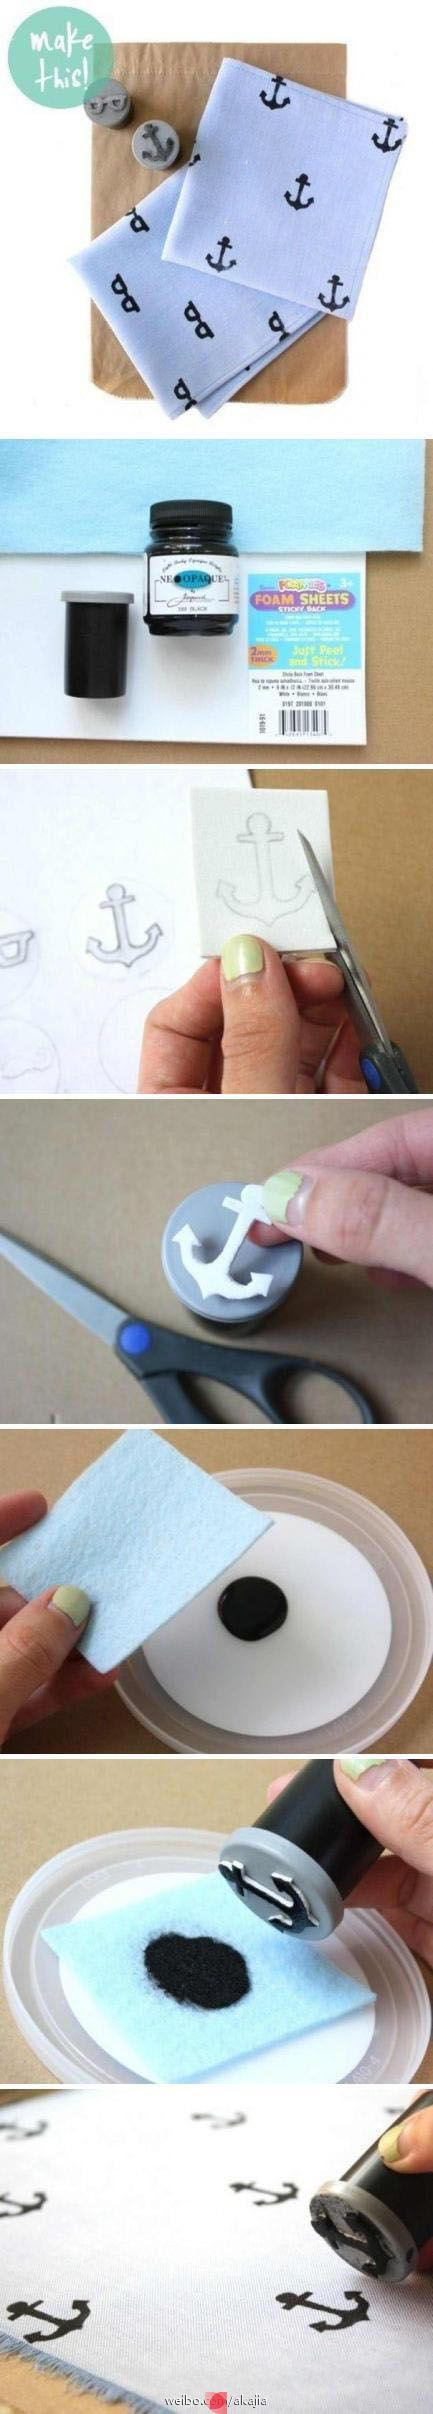 DIY Stamp + Ink ( perfect to match those Honest Anchor Diapers!)